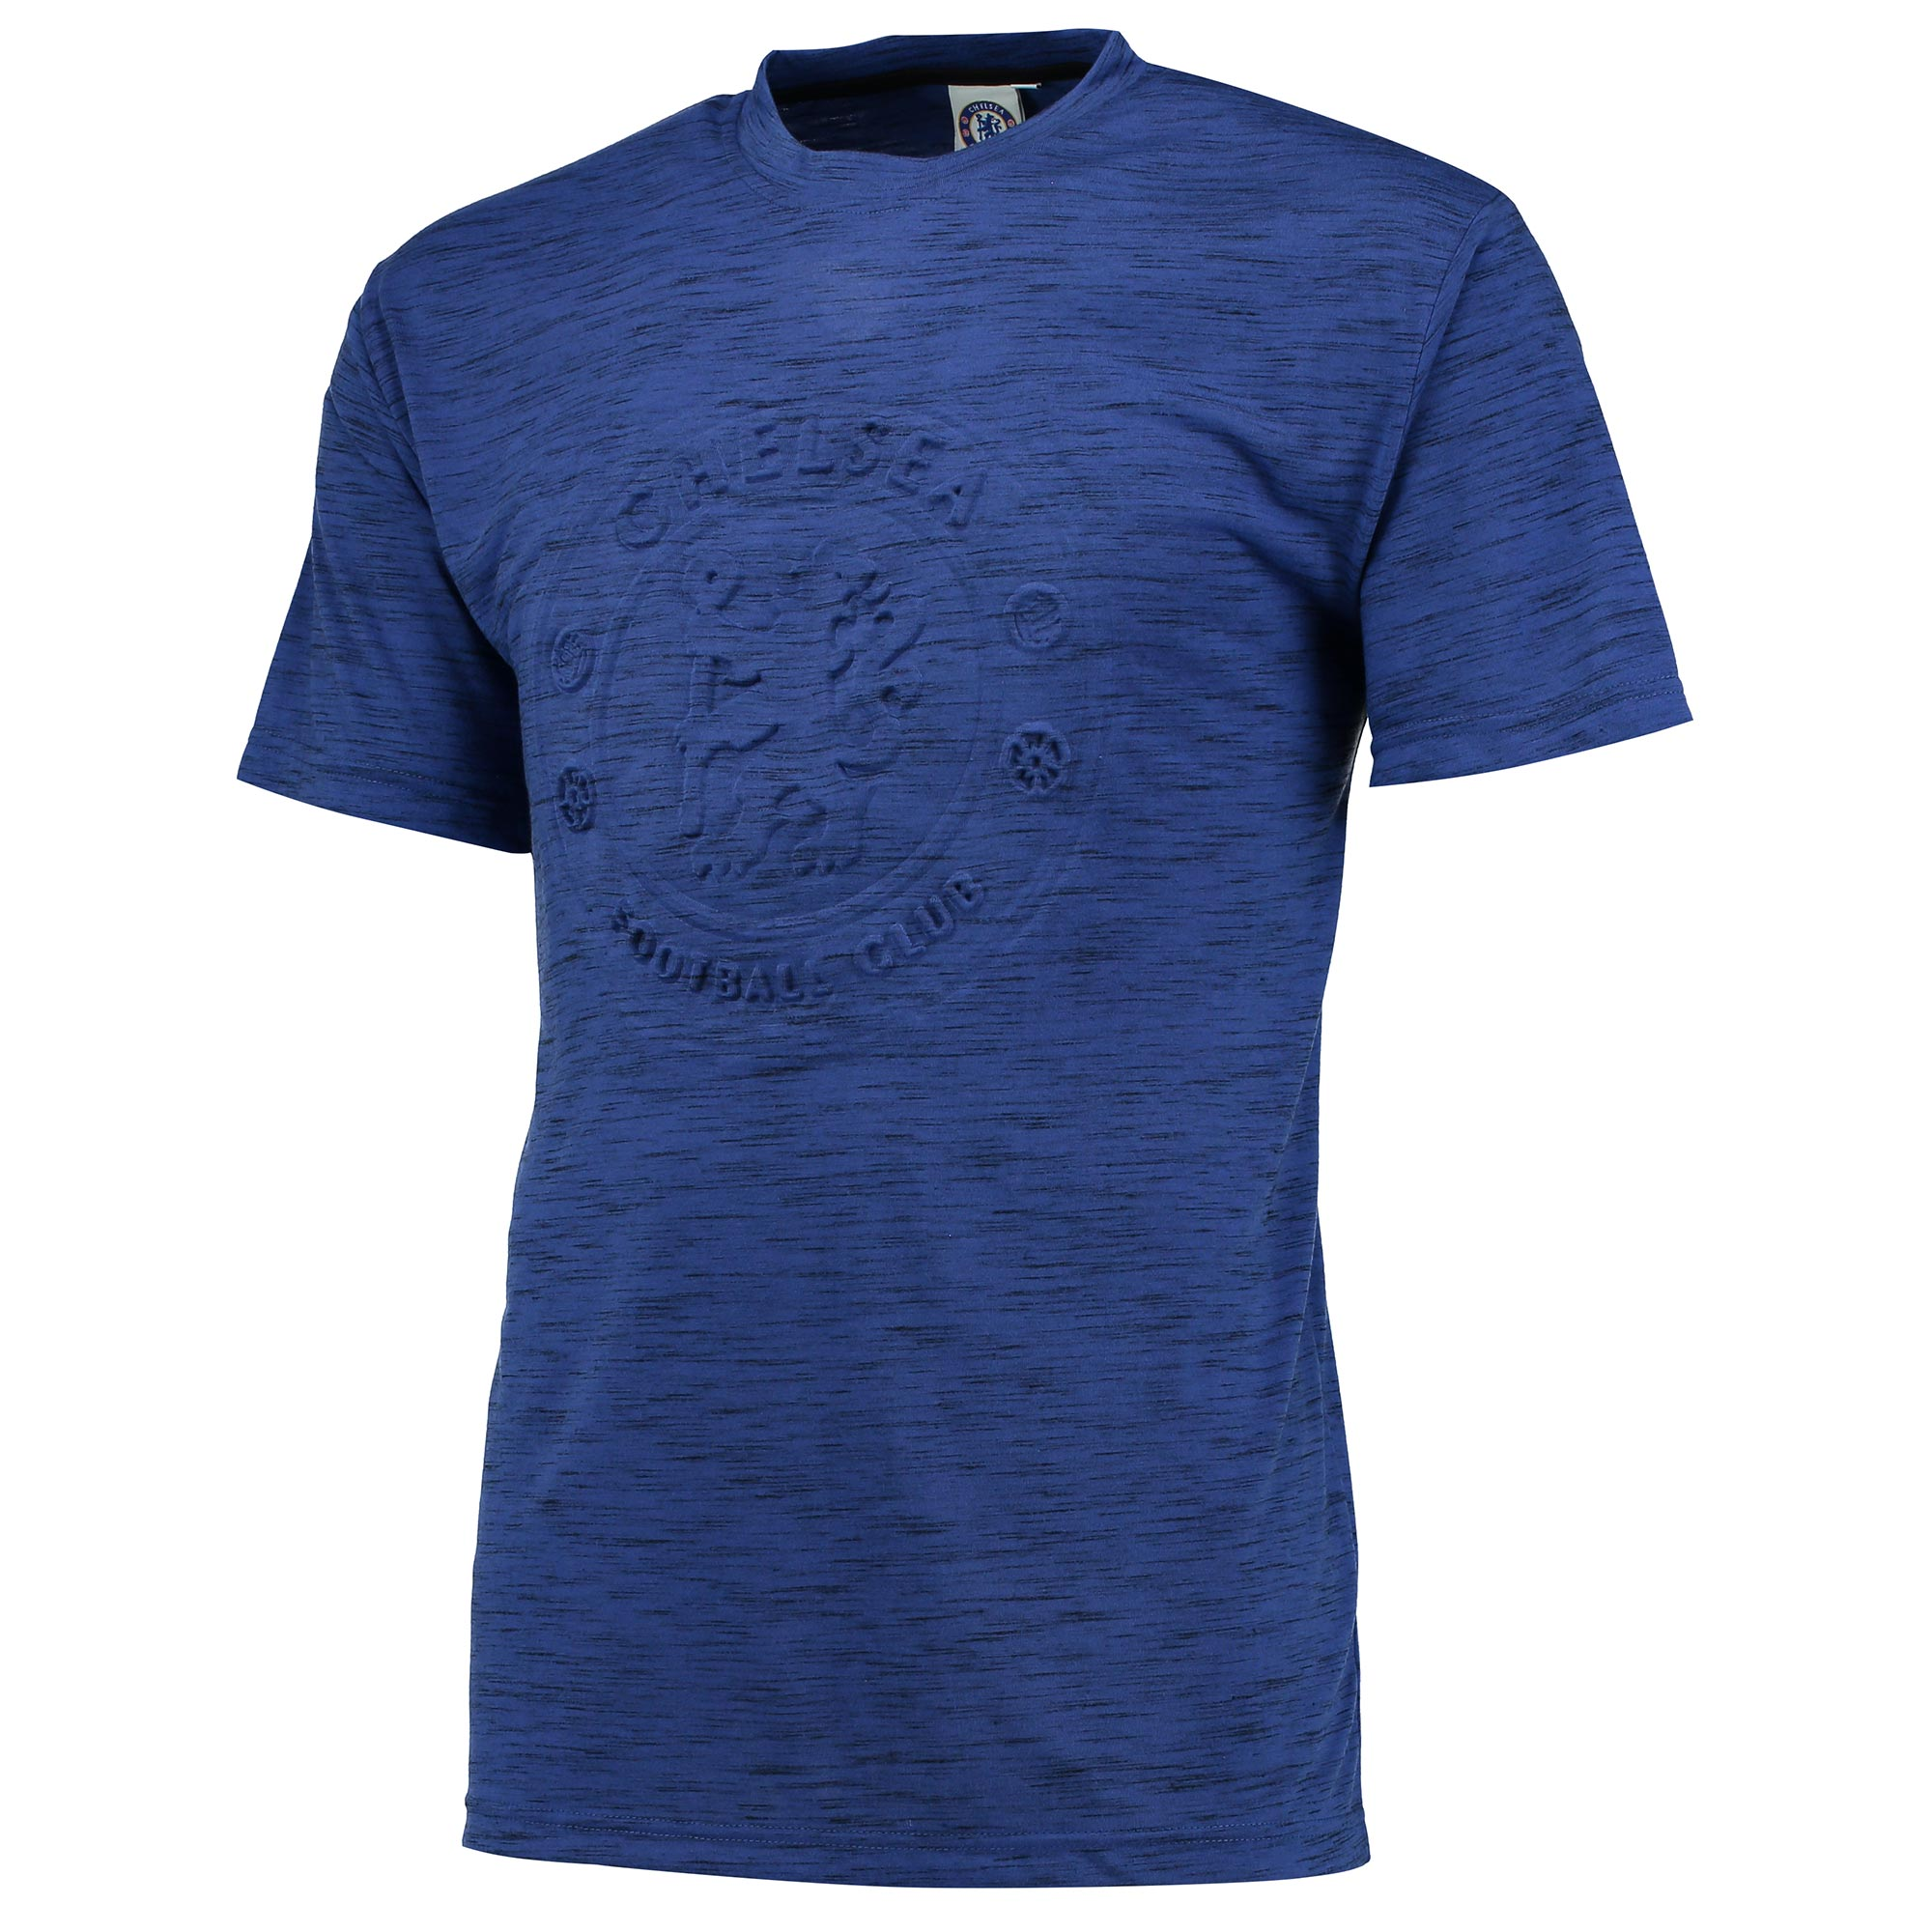 Chelsea Essential Embossed T-Shirt - Royal/Black Marl- Mens